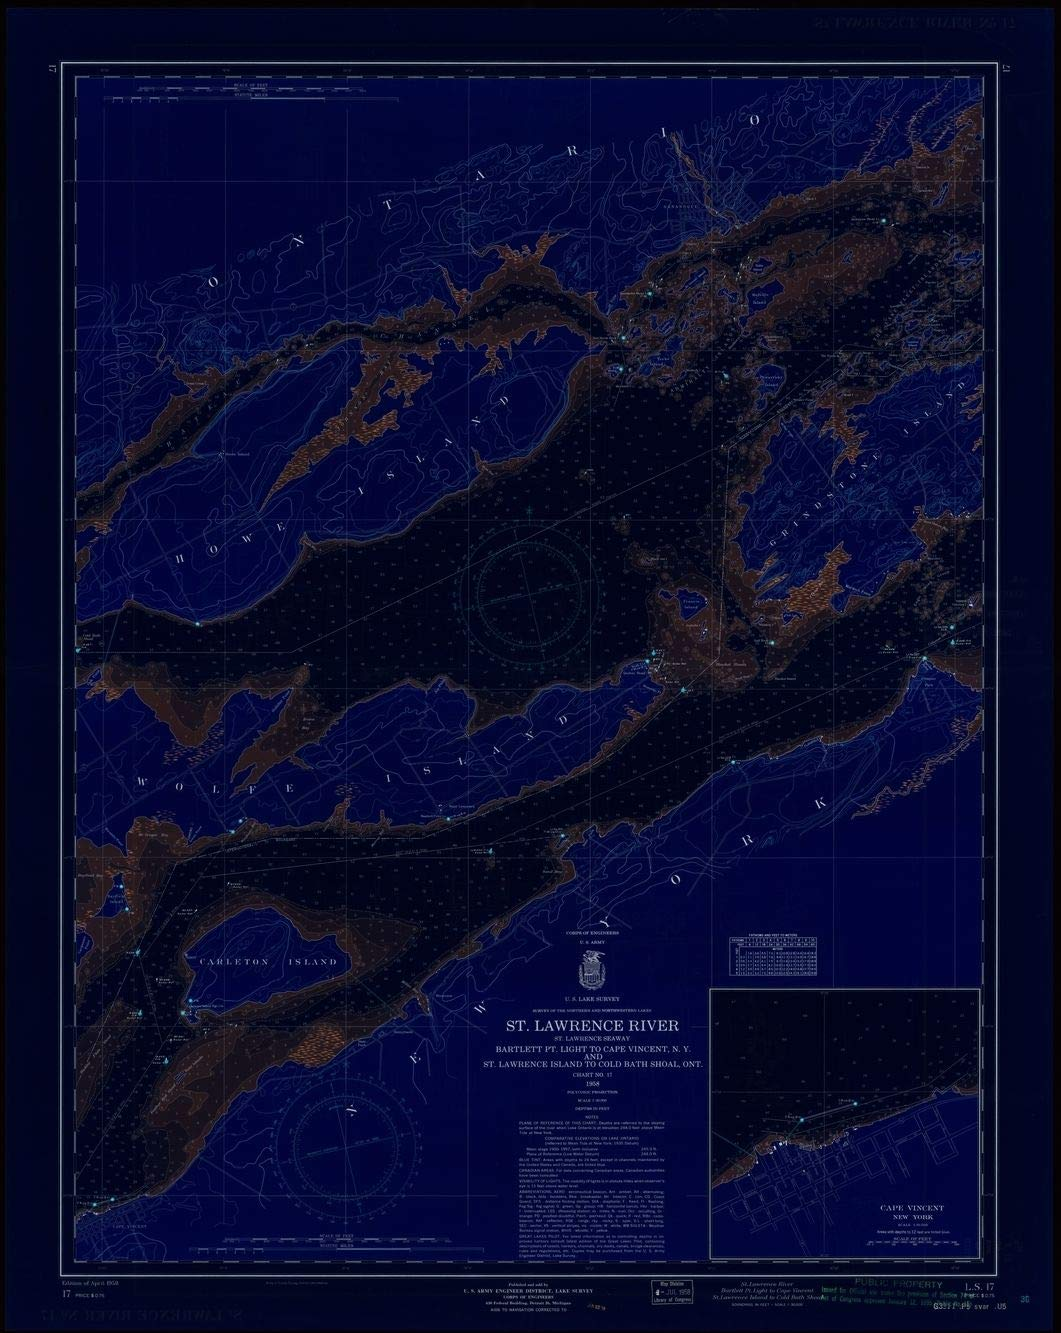 Blueprint Style 18 x 24 Reprint of 1958 Nautical Chart ST. LAWRENCE RIVER, ST. LAWRENCE SEAWAY, BARTLETT PT. LIGHT TO CAPE VINCENT, N.Y. AND ST. LAWRENCE ISLAND TO COLD BATH SHOAL, ONT. by Lak